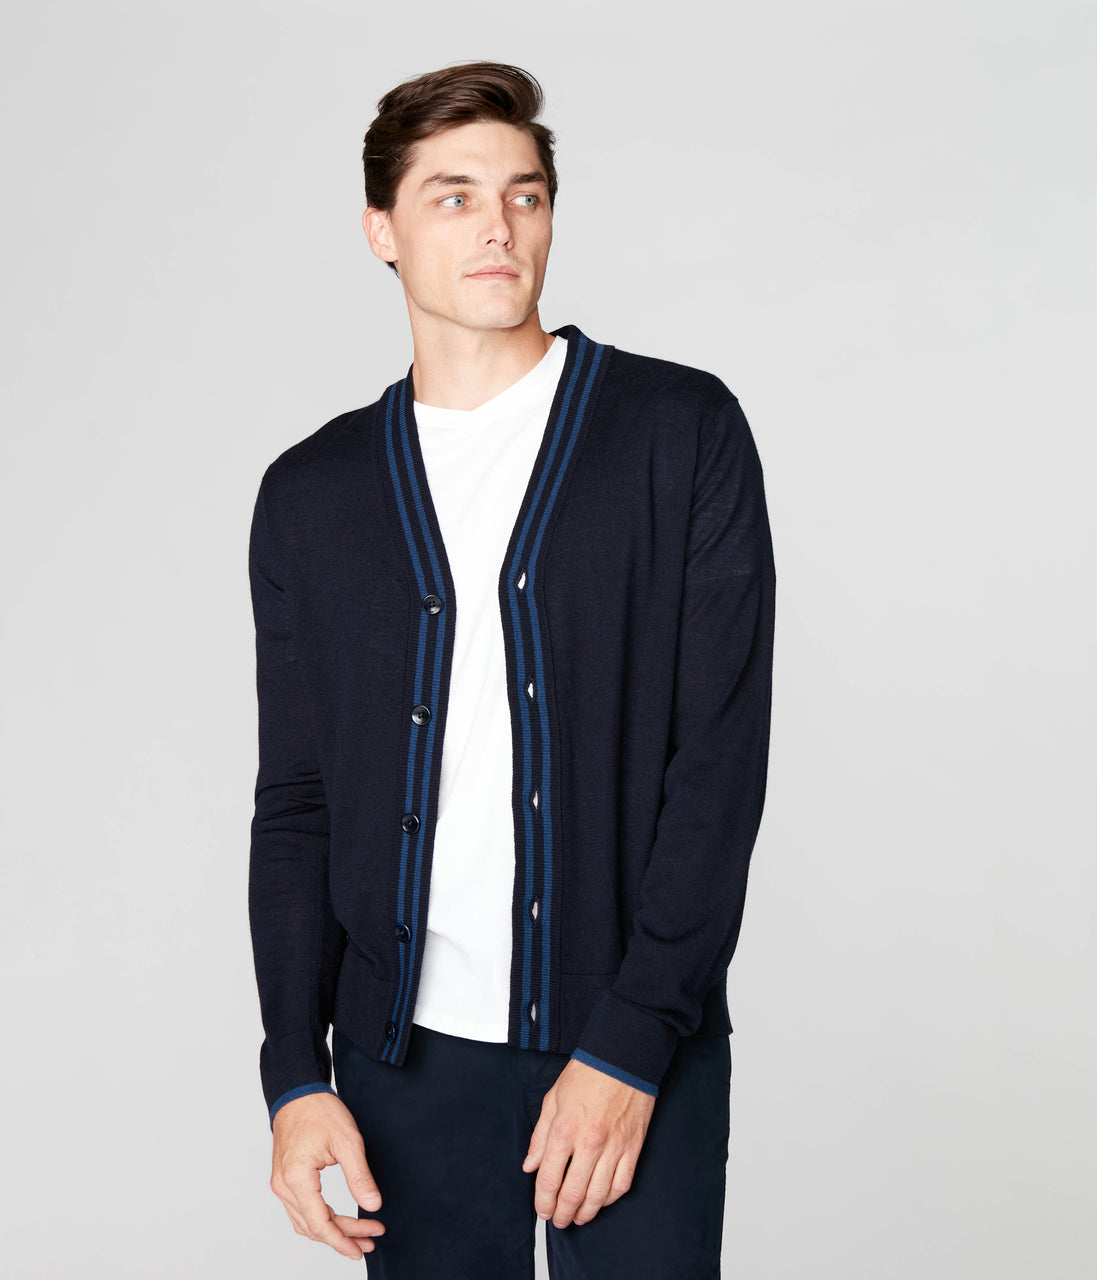 Edge Cardigan in Merino Wool - Navy - Good Man Brand - Edge Cardigan in Merino Wool - Navy